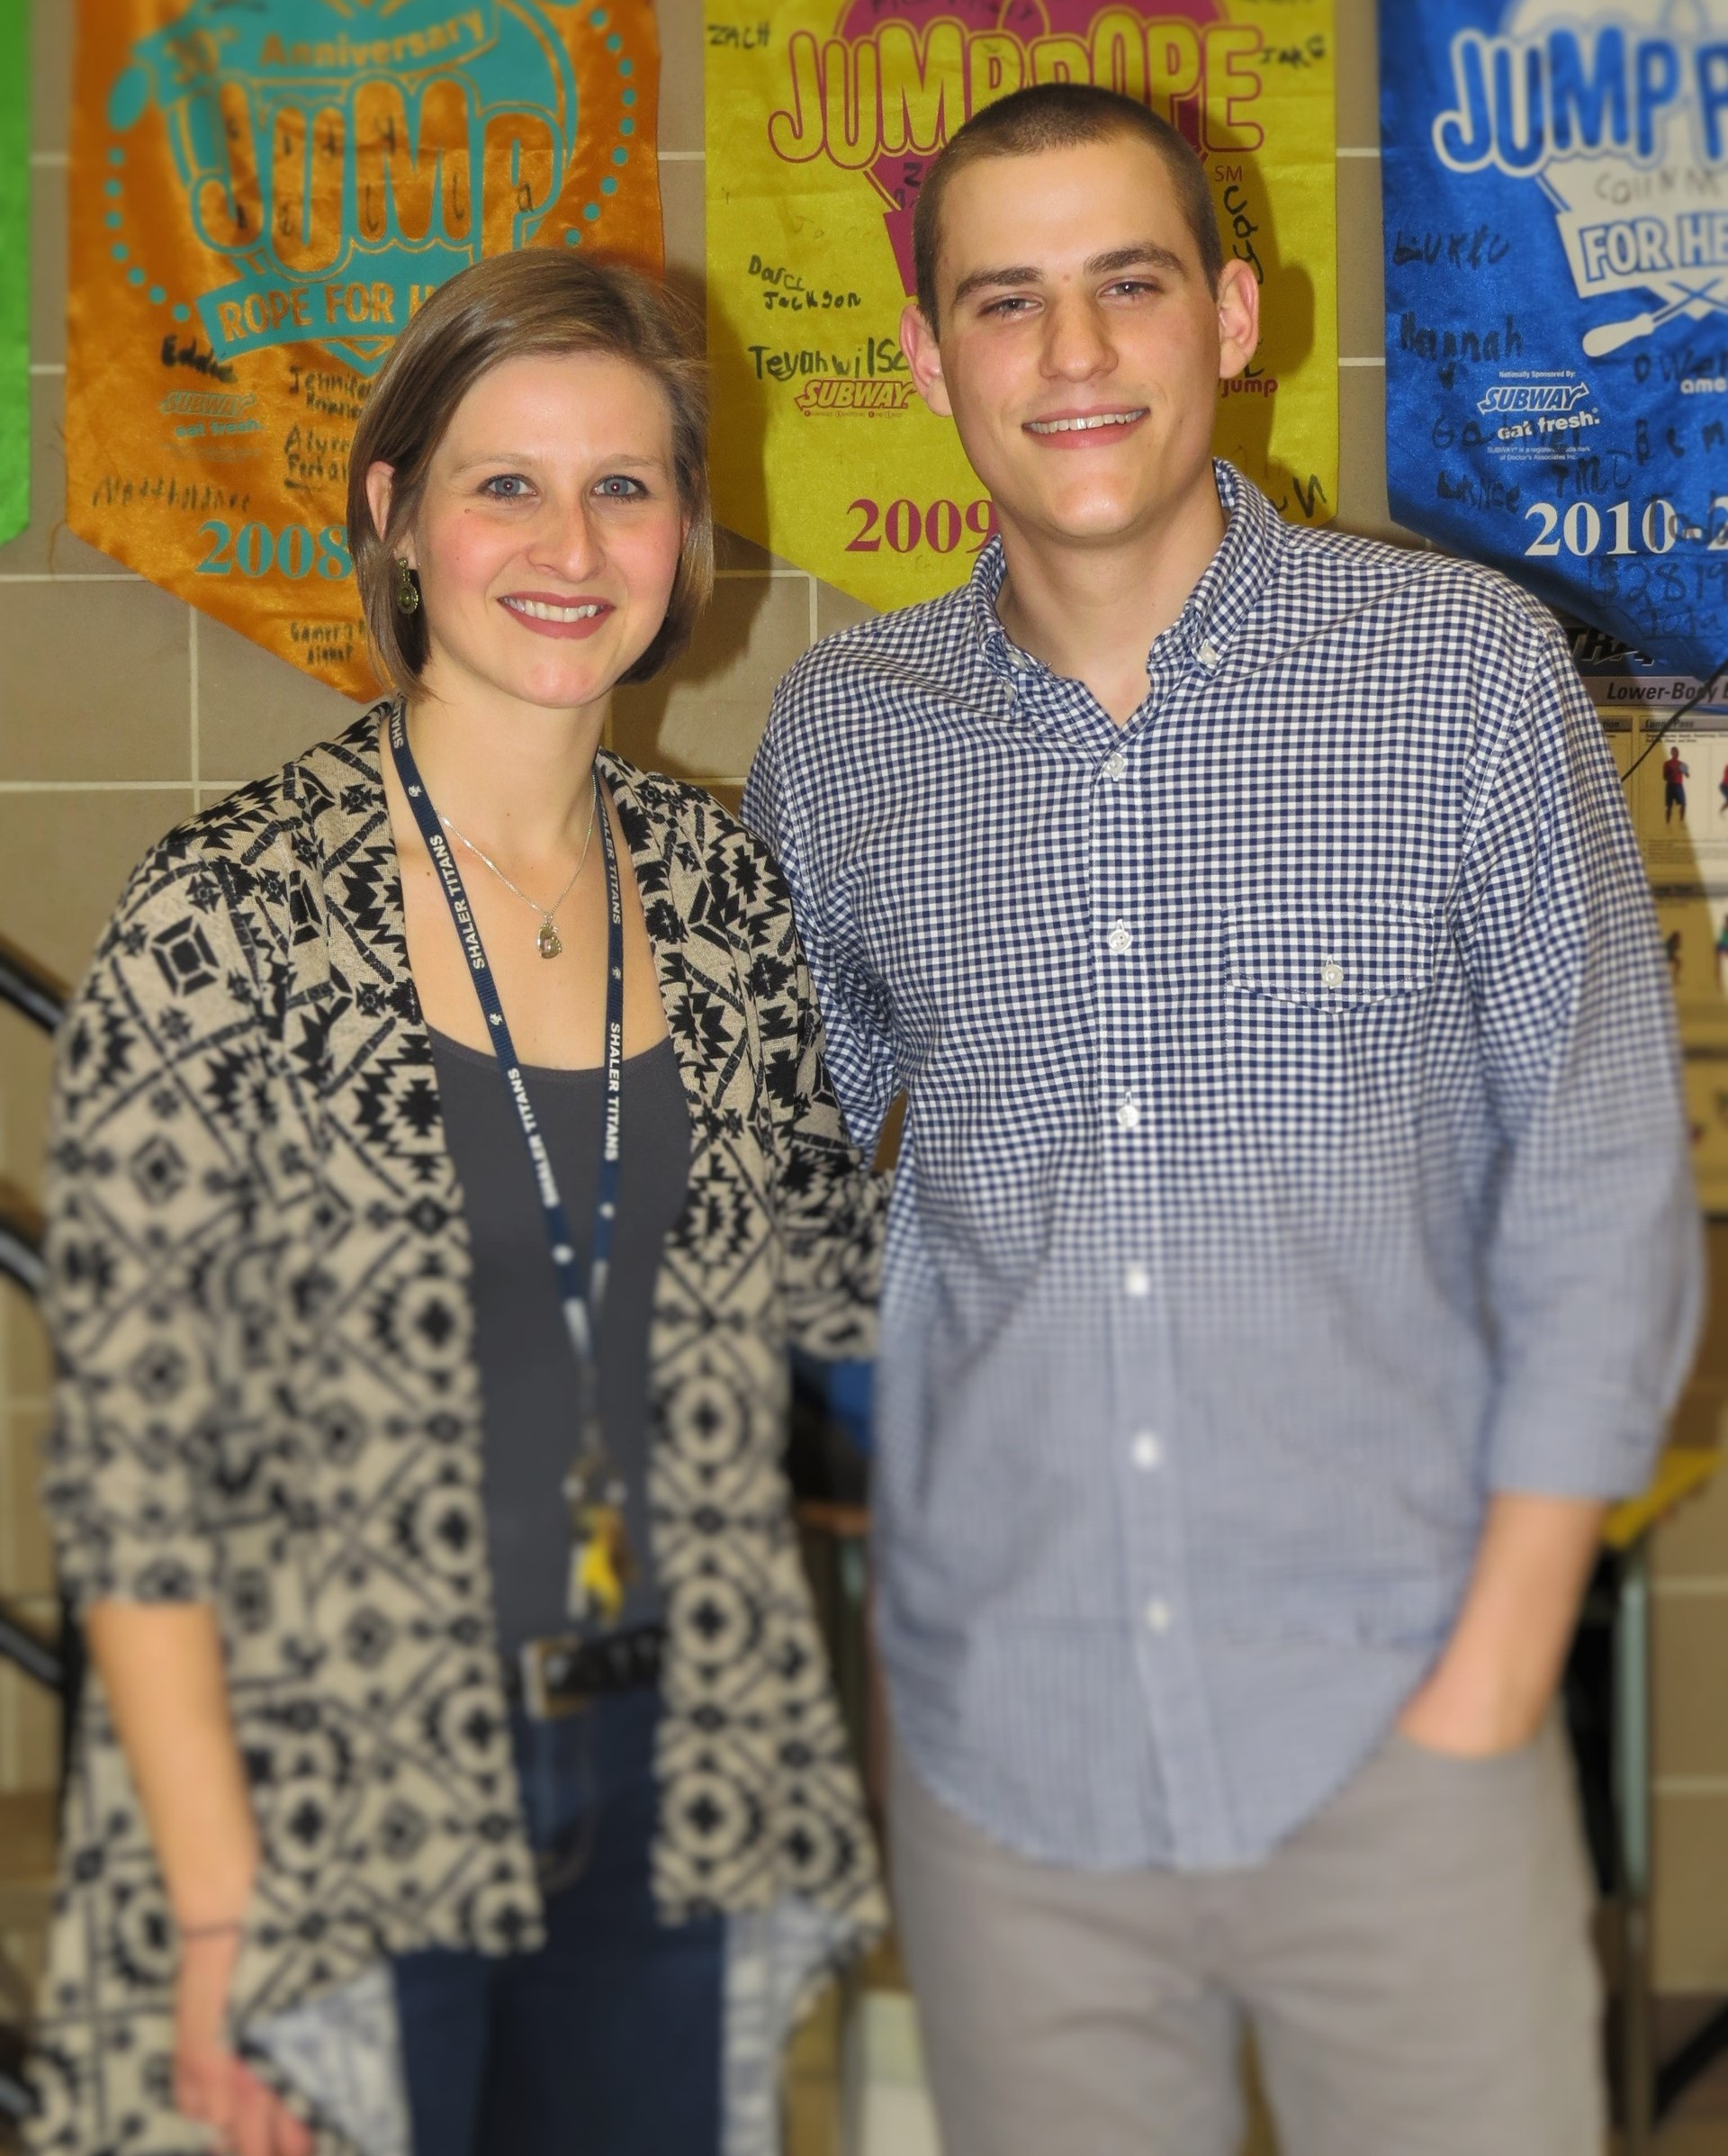 Mrs. Susan Randall and Mr. Chris Jamison